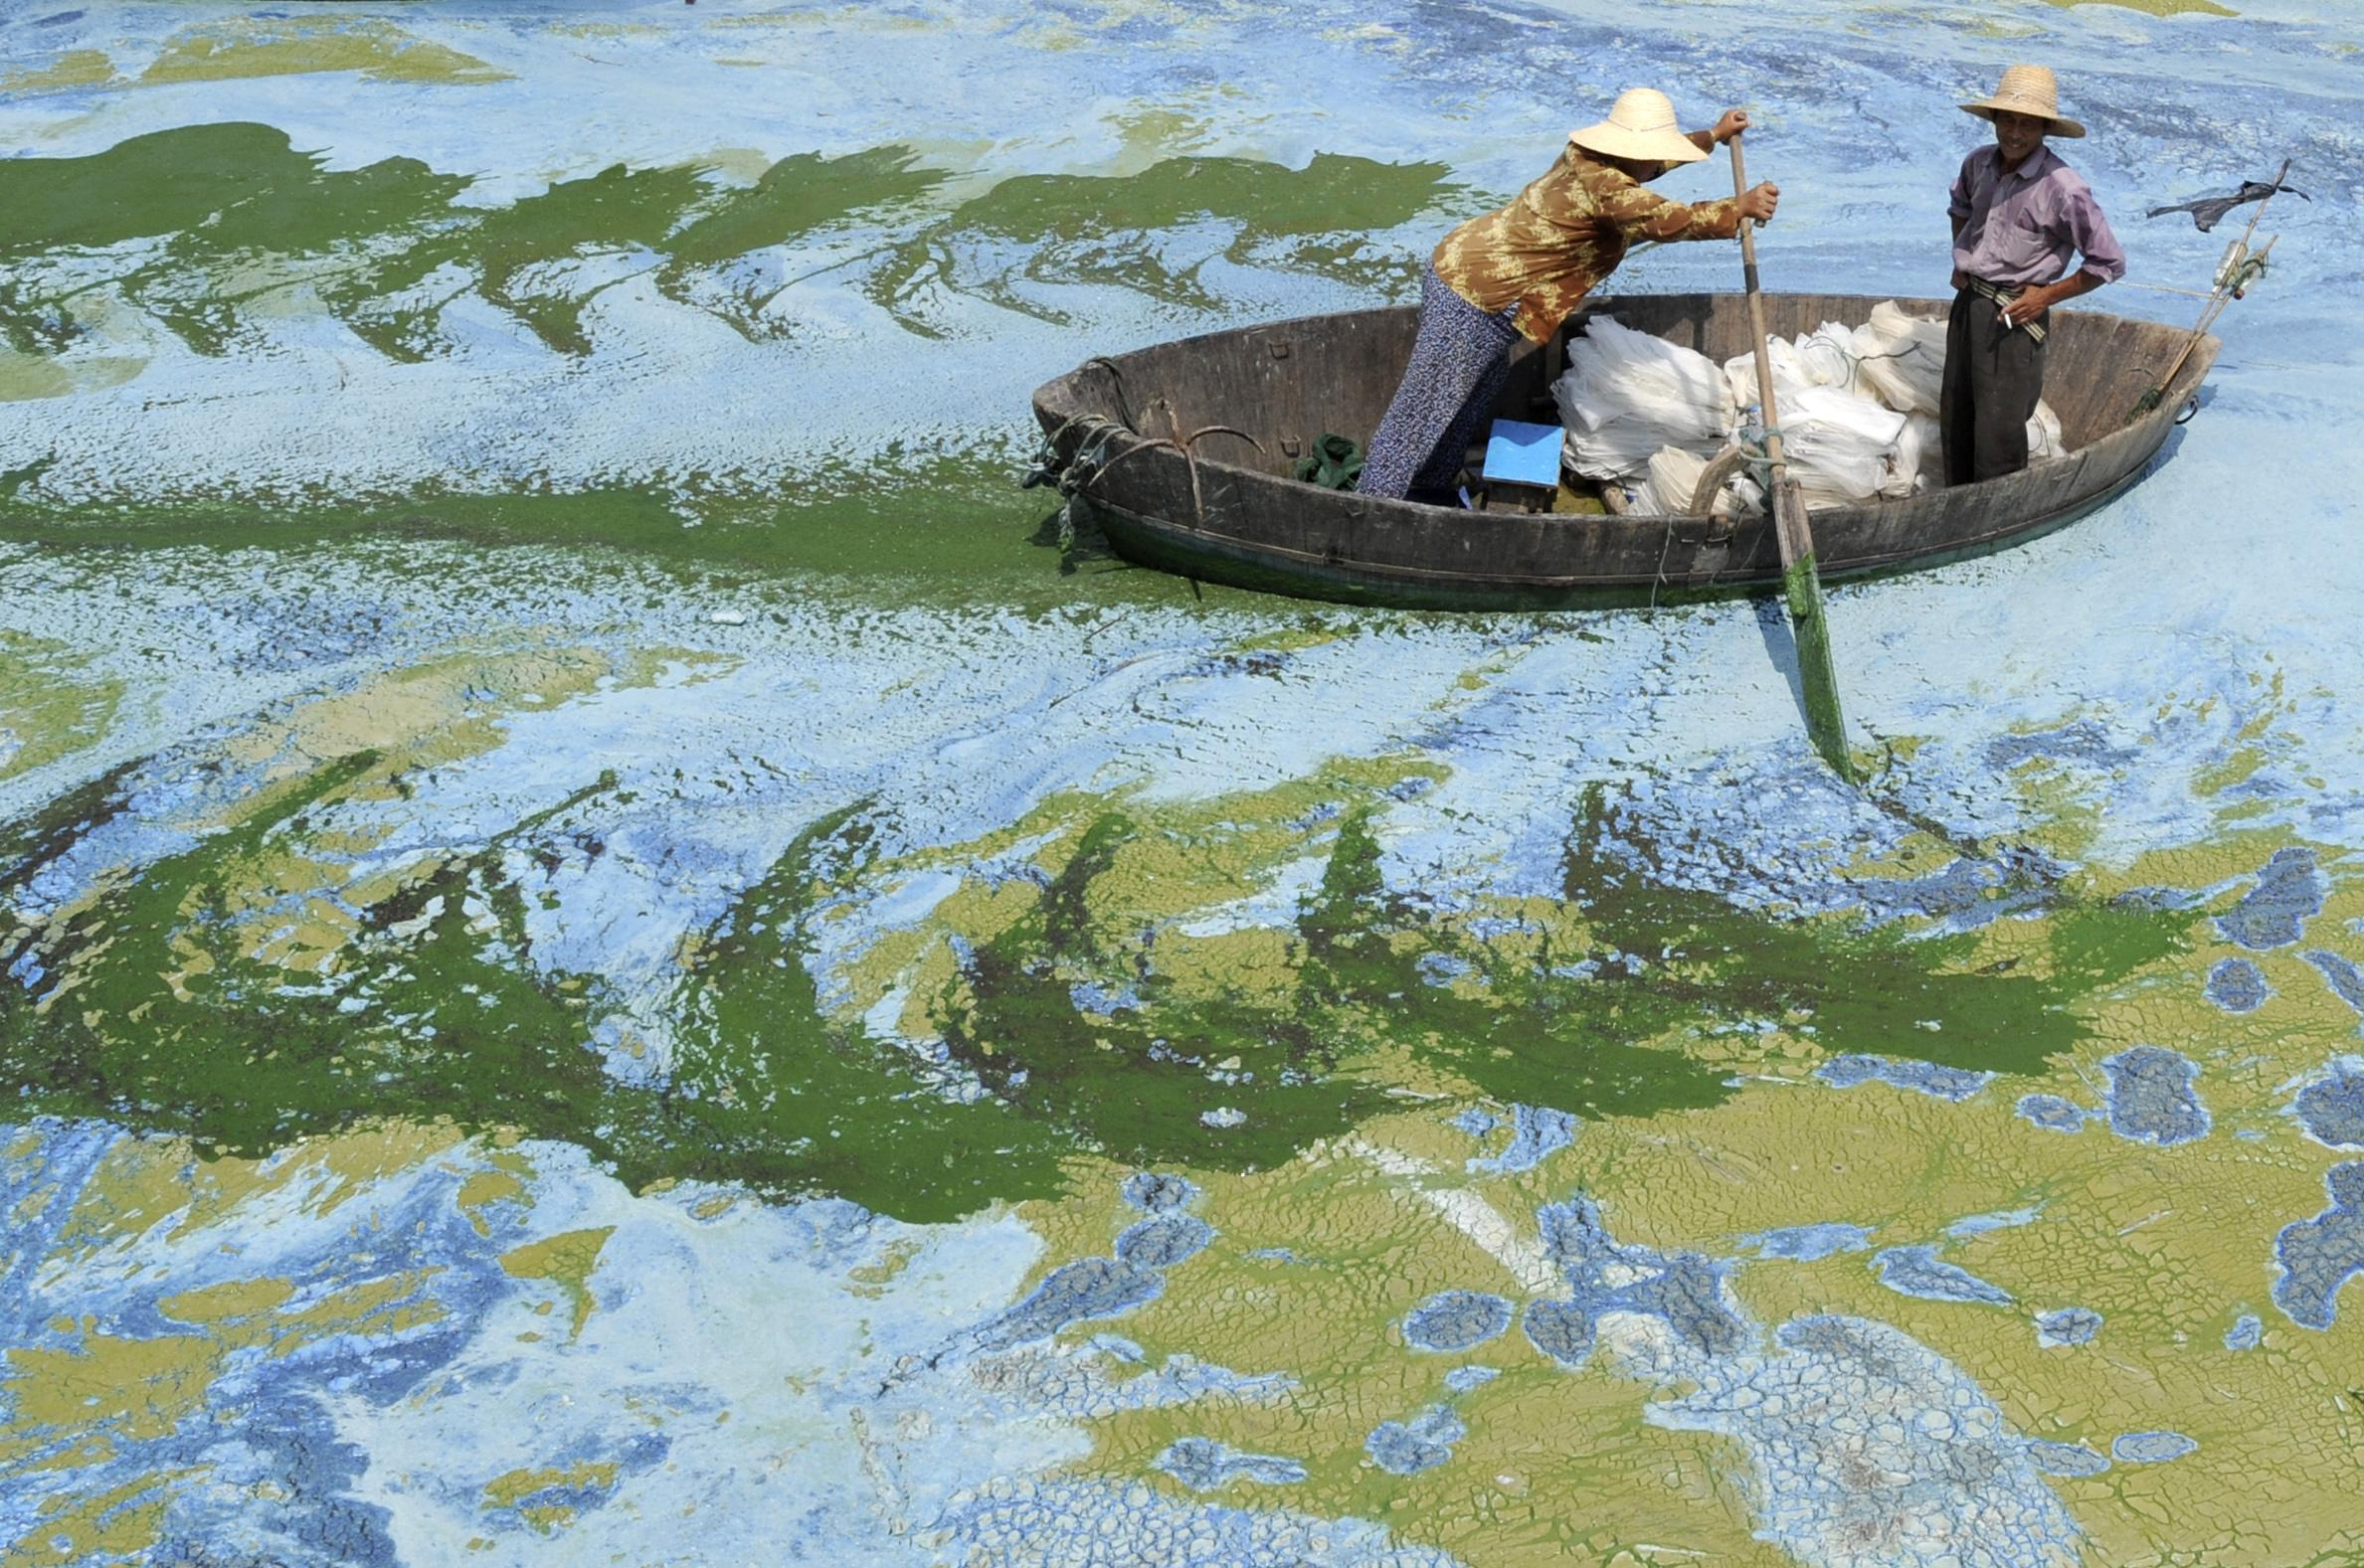 China river pollution